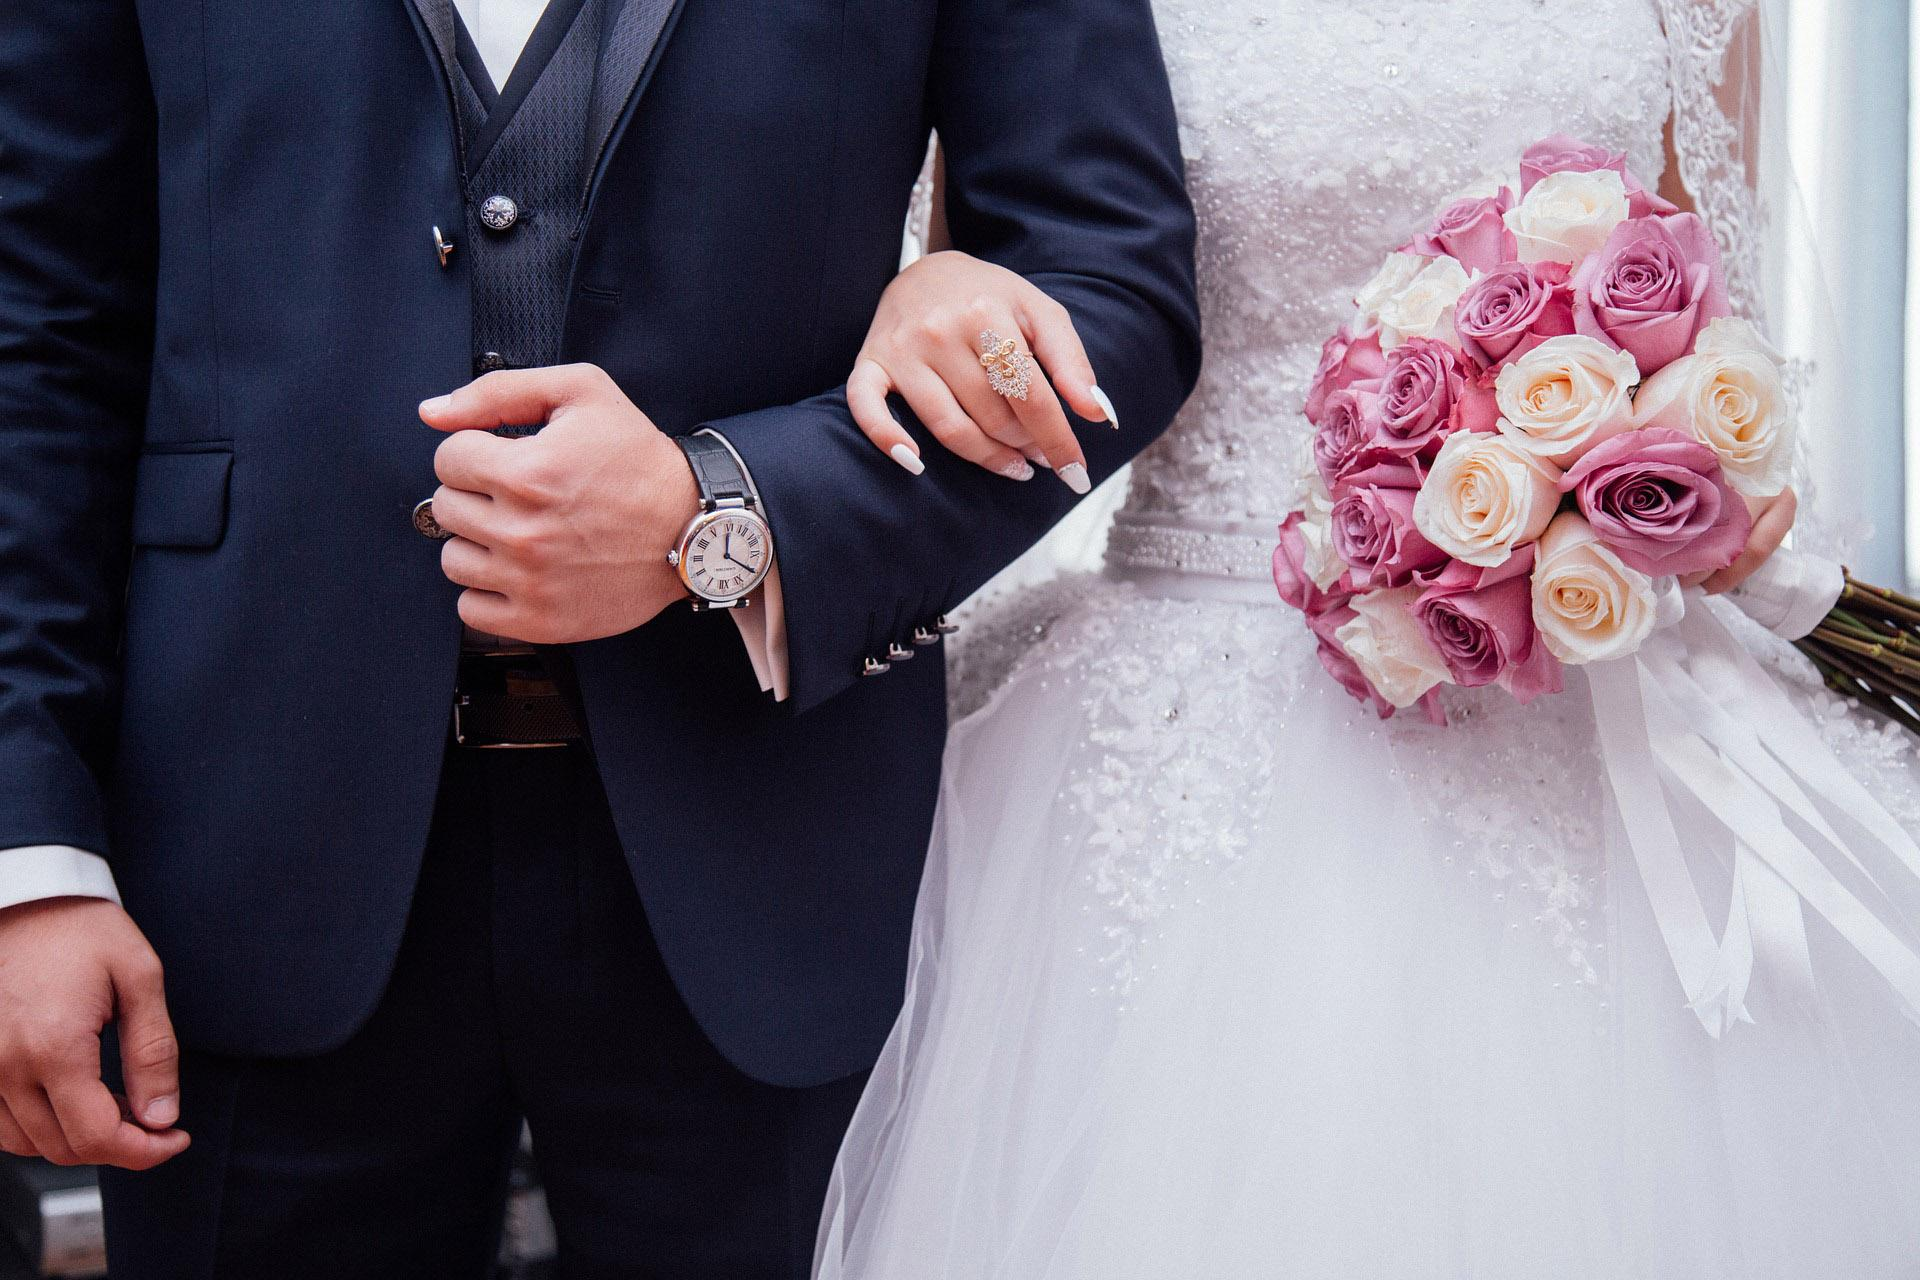 Going to a Wedding or Planning One in 2020? Here's What You Can Expect | Chicago News | WTTW